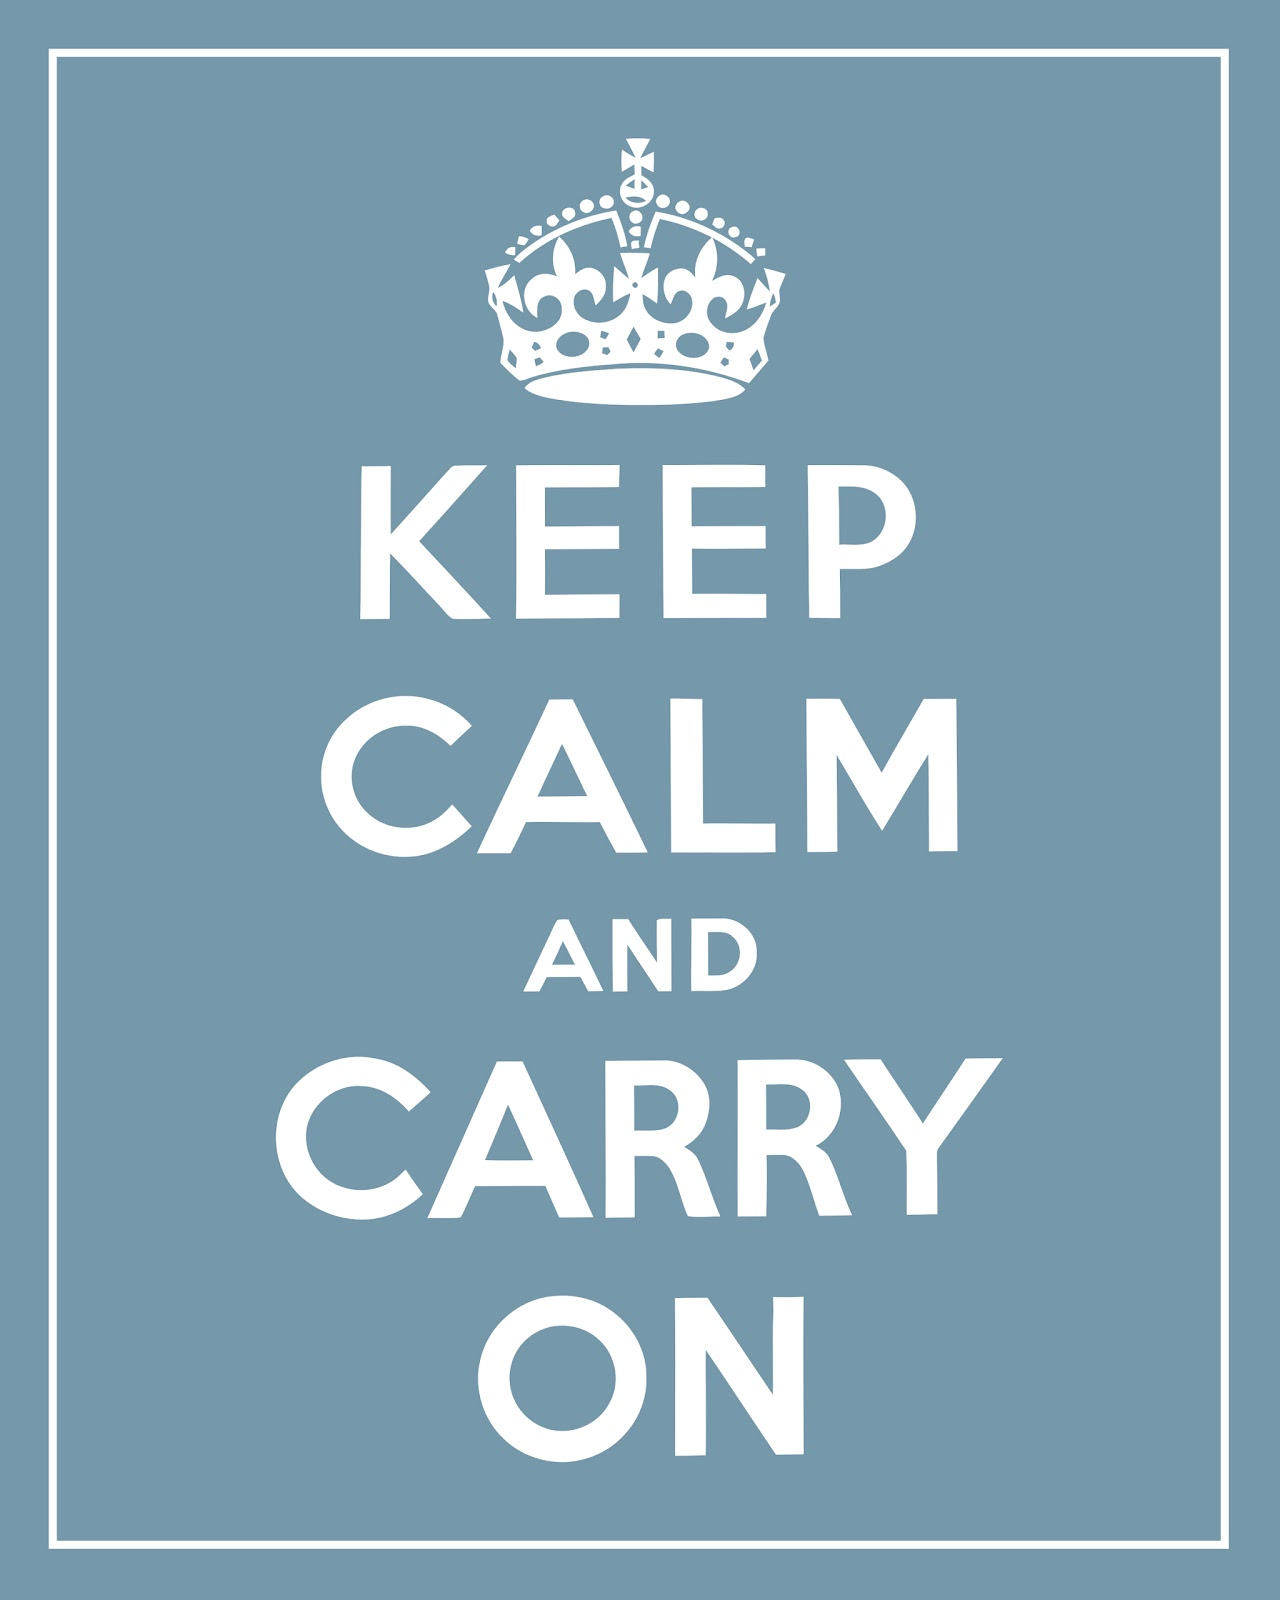 keep calm and carry on experiential hermeneutics